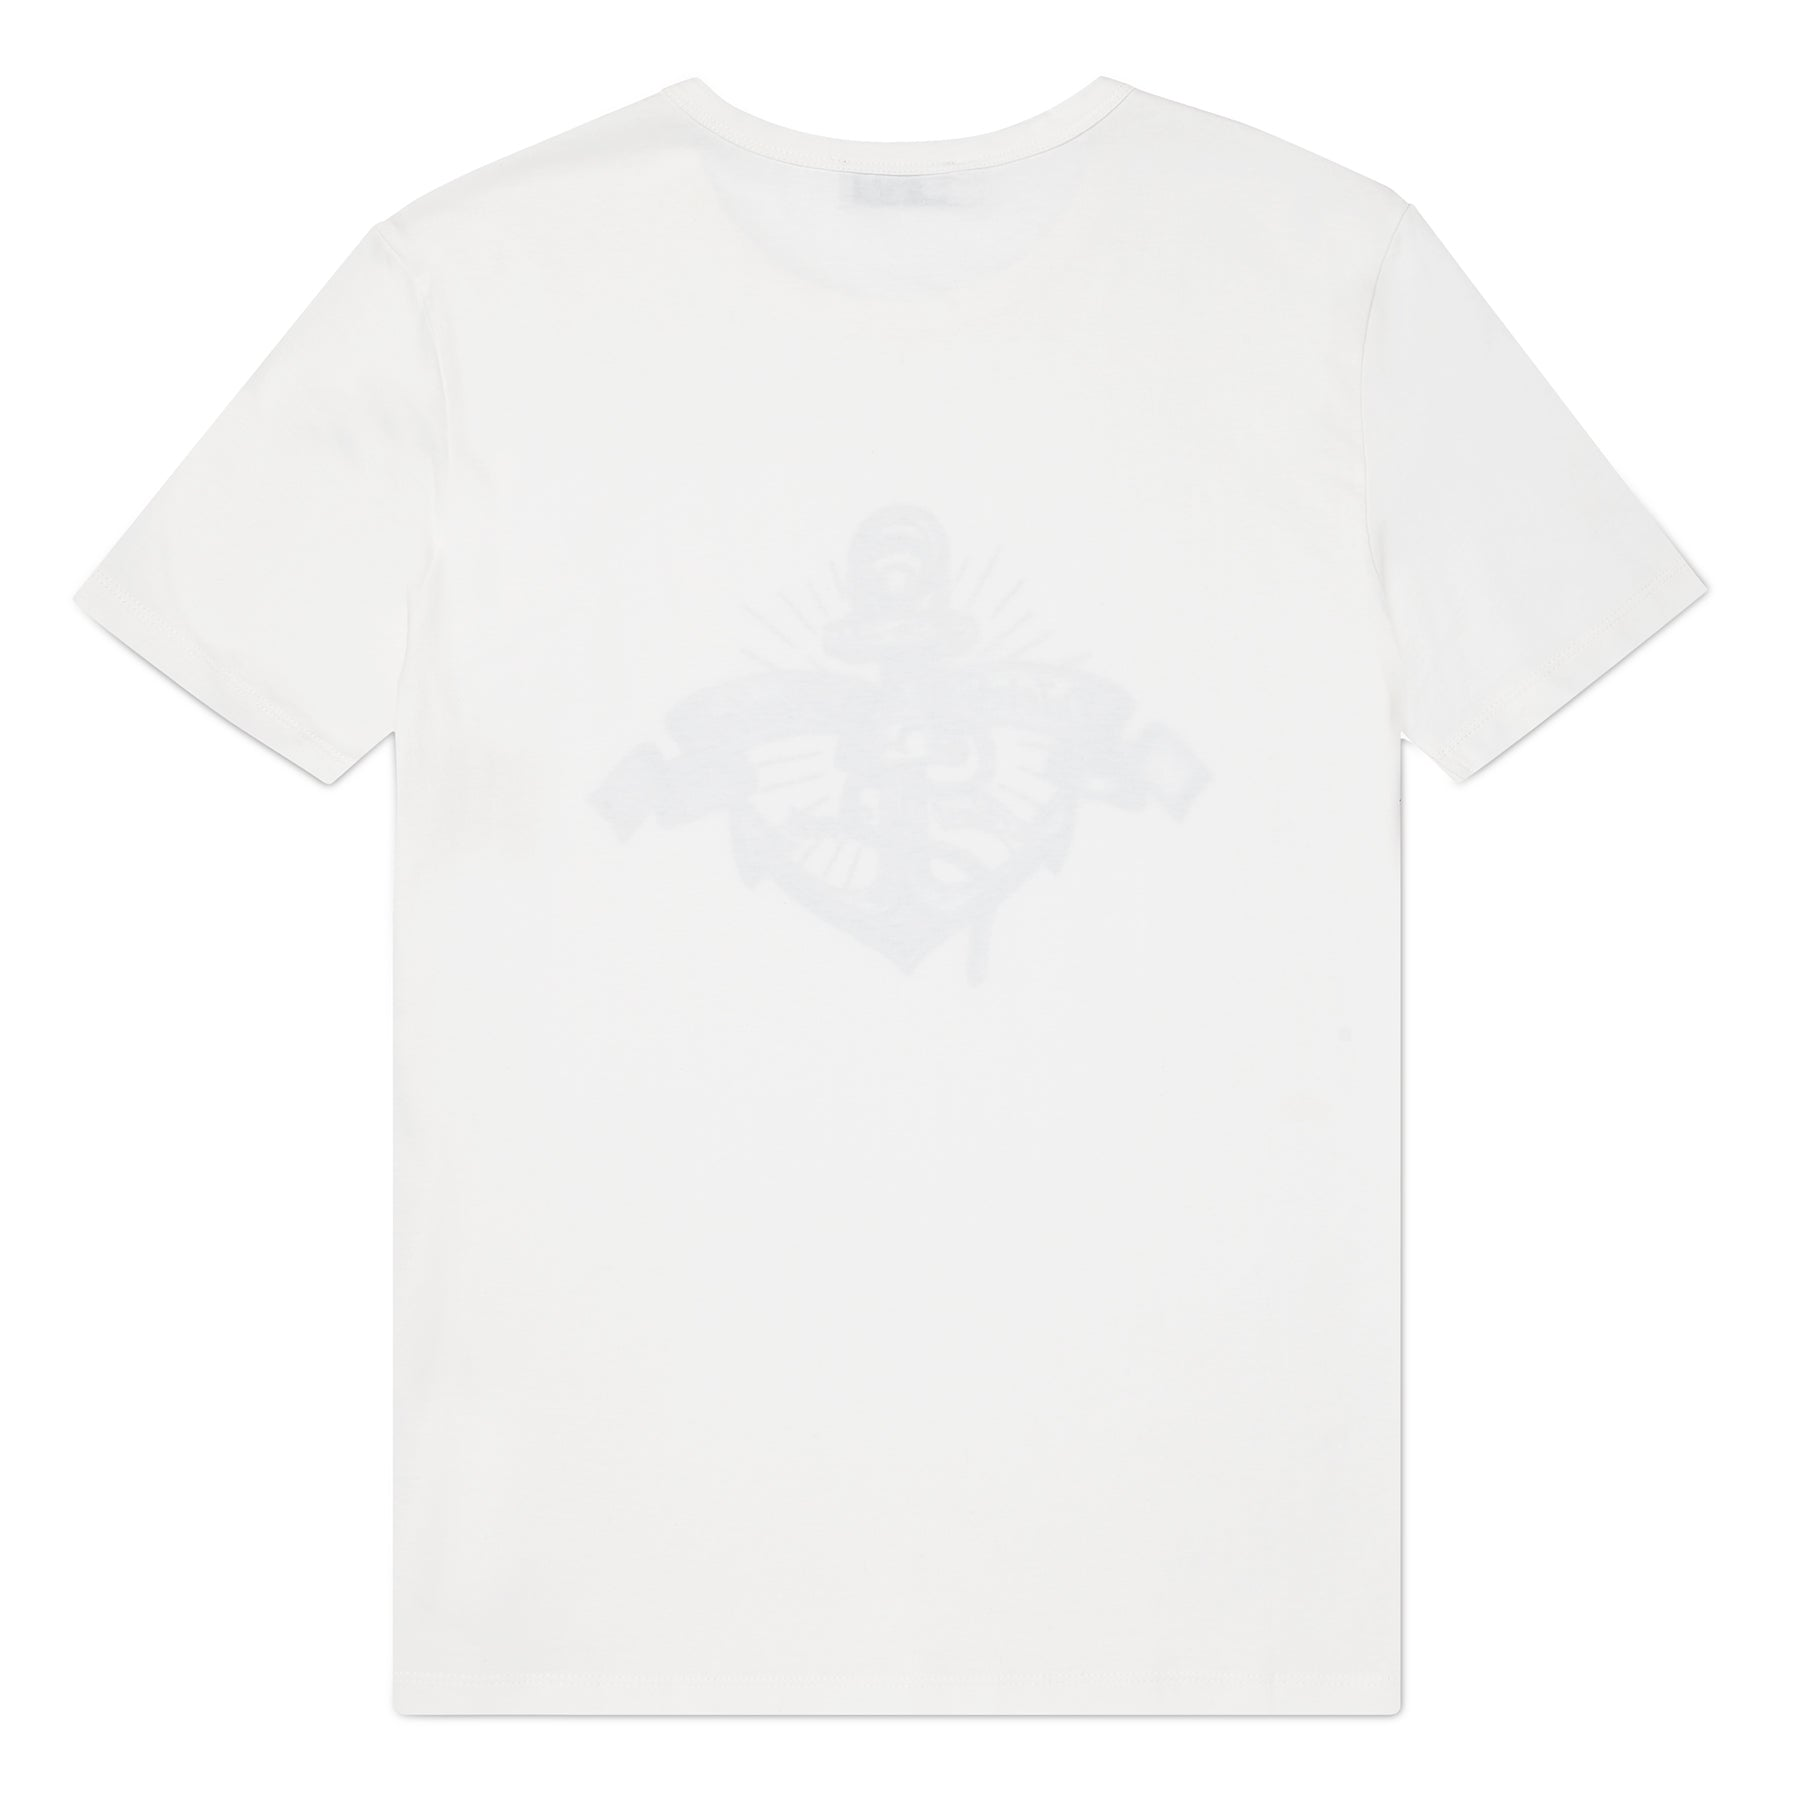 White O&B Graphic Logo Print Tee, Muscle Fit